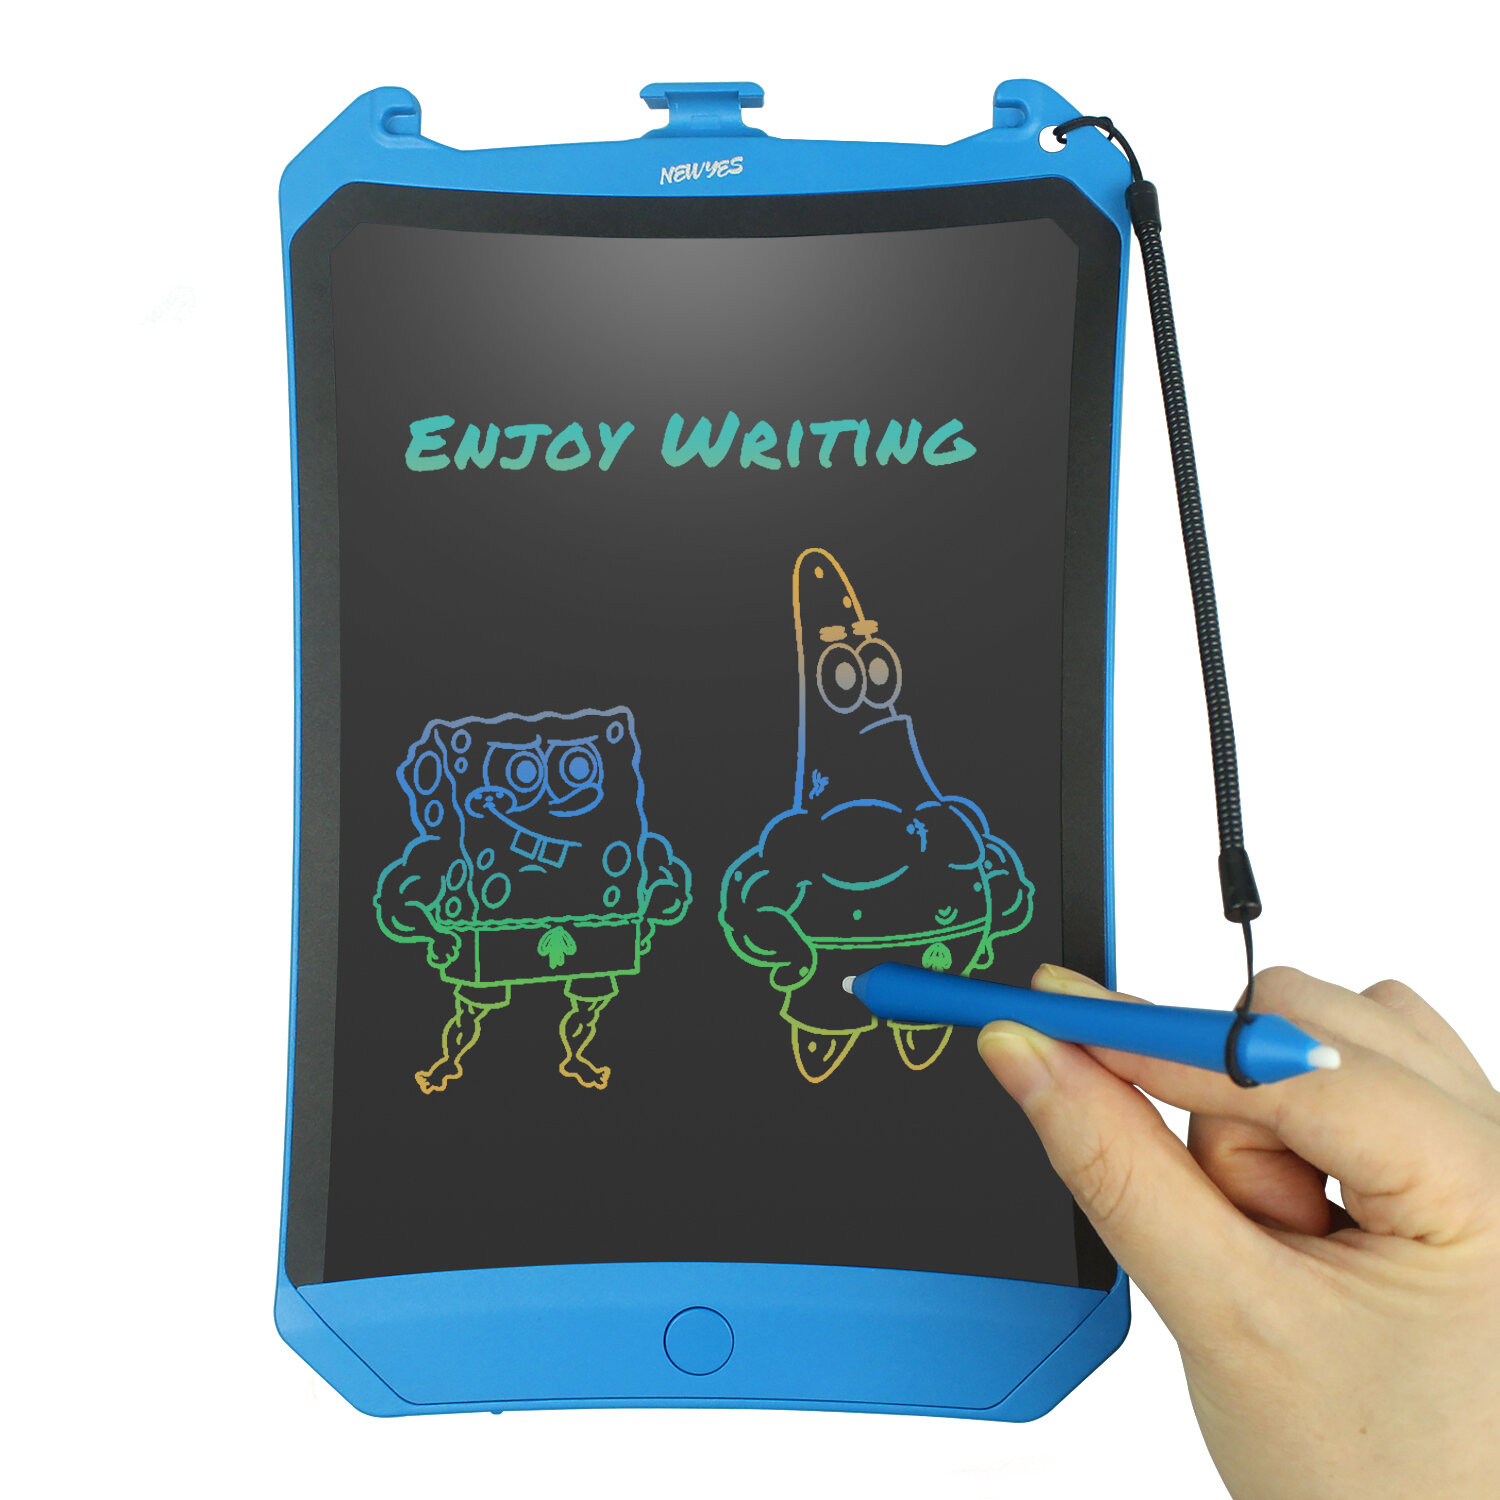 NEWYES 8.5inch LCD Writing Tablet Drawing Notepad Electronic Handwriting Painting Office Pad Multi color Screen Lock Key One click Eraser Toys - 5